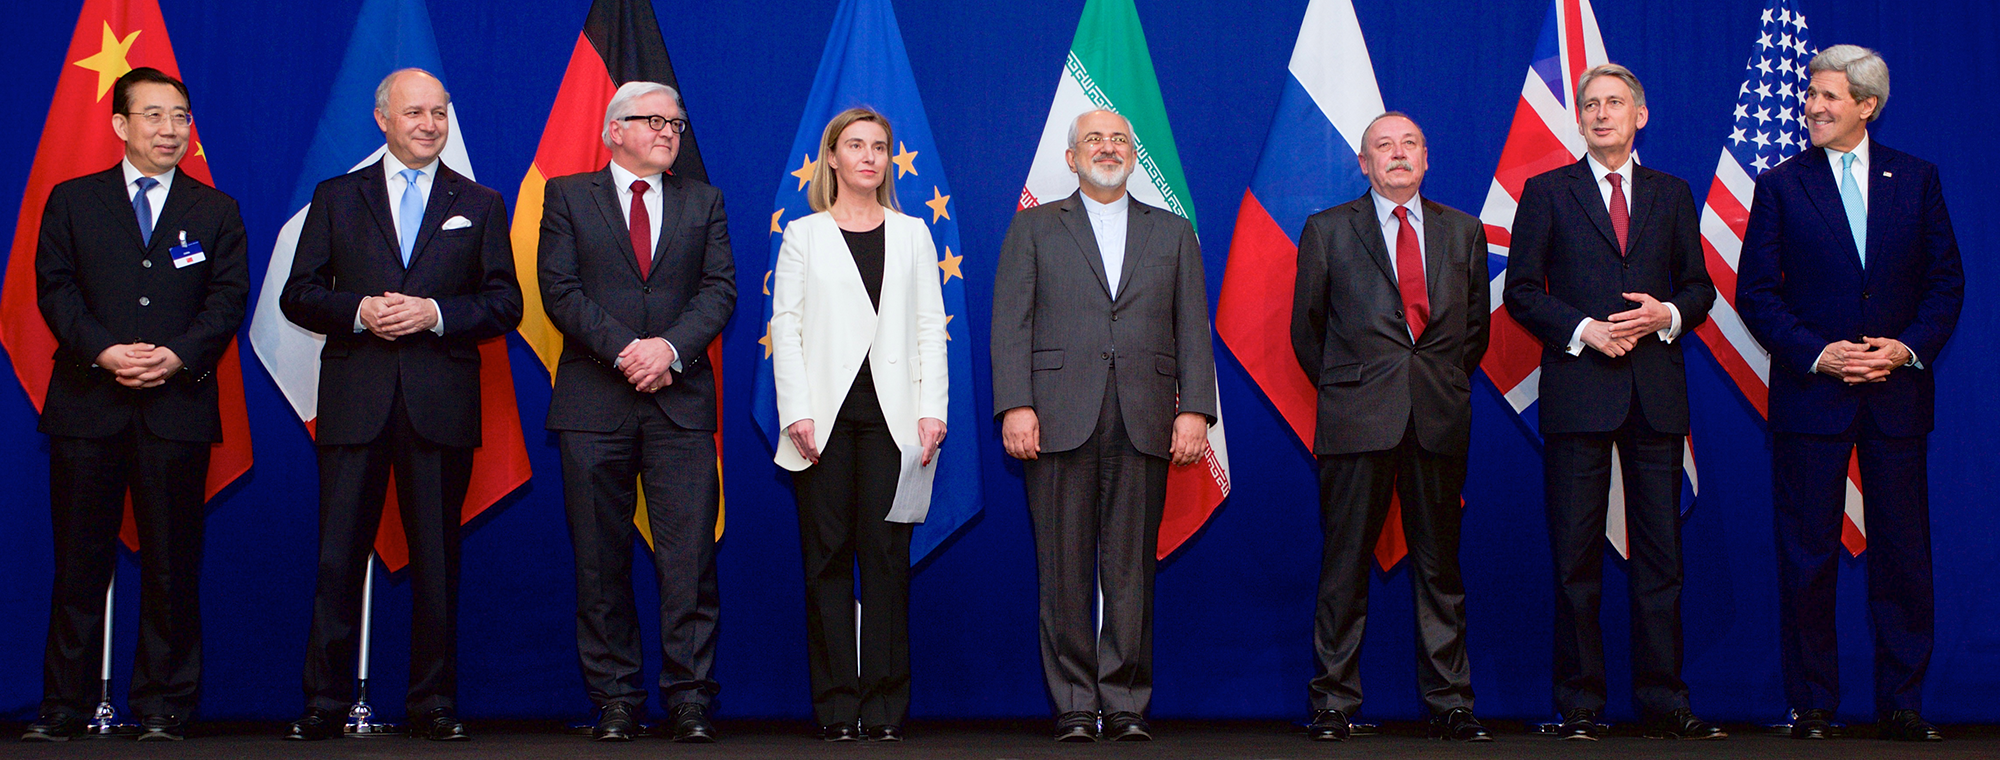 Secretary Kerry Poses for a Photo With P5+1 Leaders and Iranian Foreign Minister Zarif Following Negotiations About Future of Iran's Nuclear Program